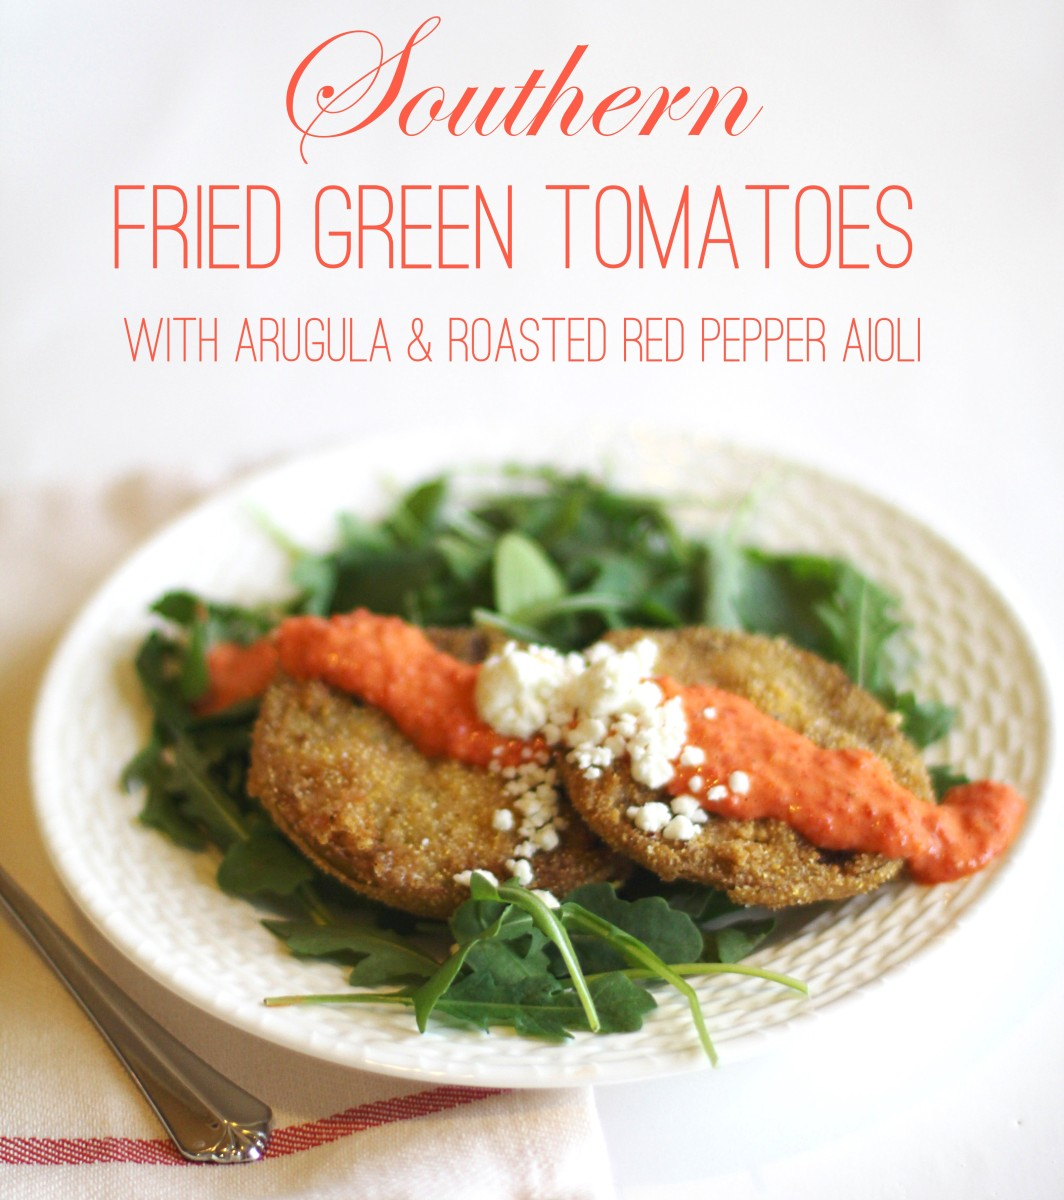 Southern Fried Green Tomatoes with Arugula and Roasted Red Pepper Aioli